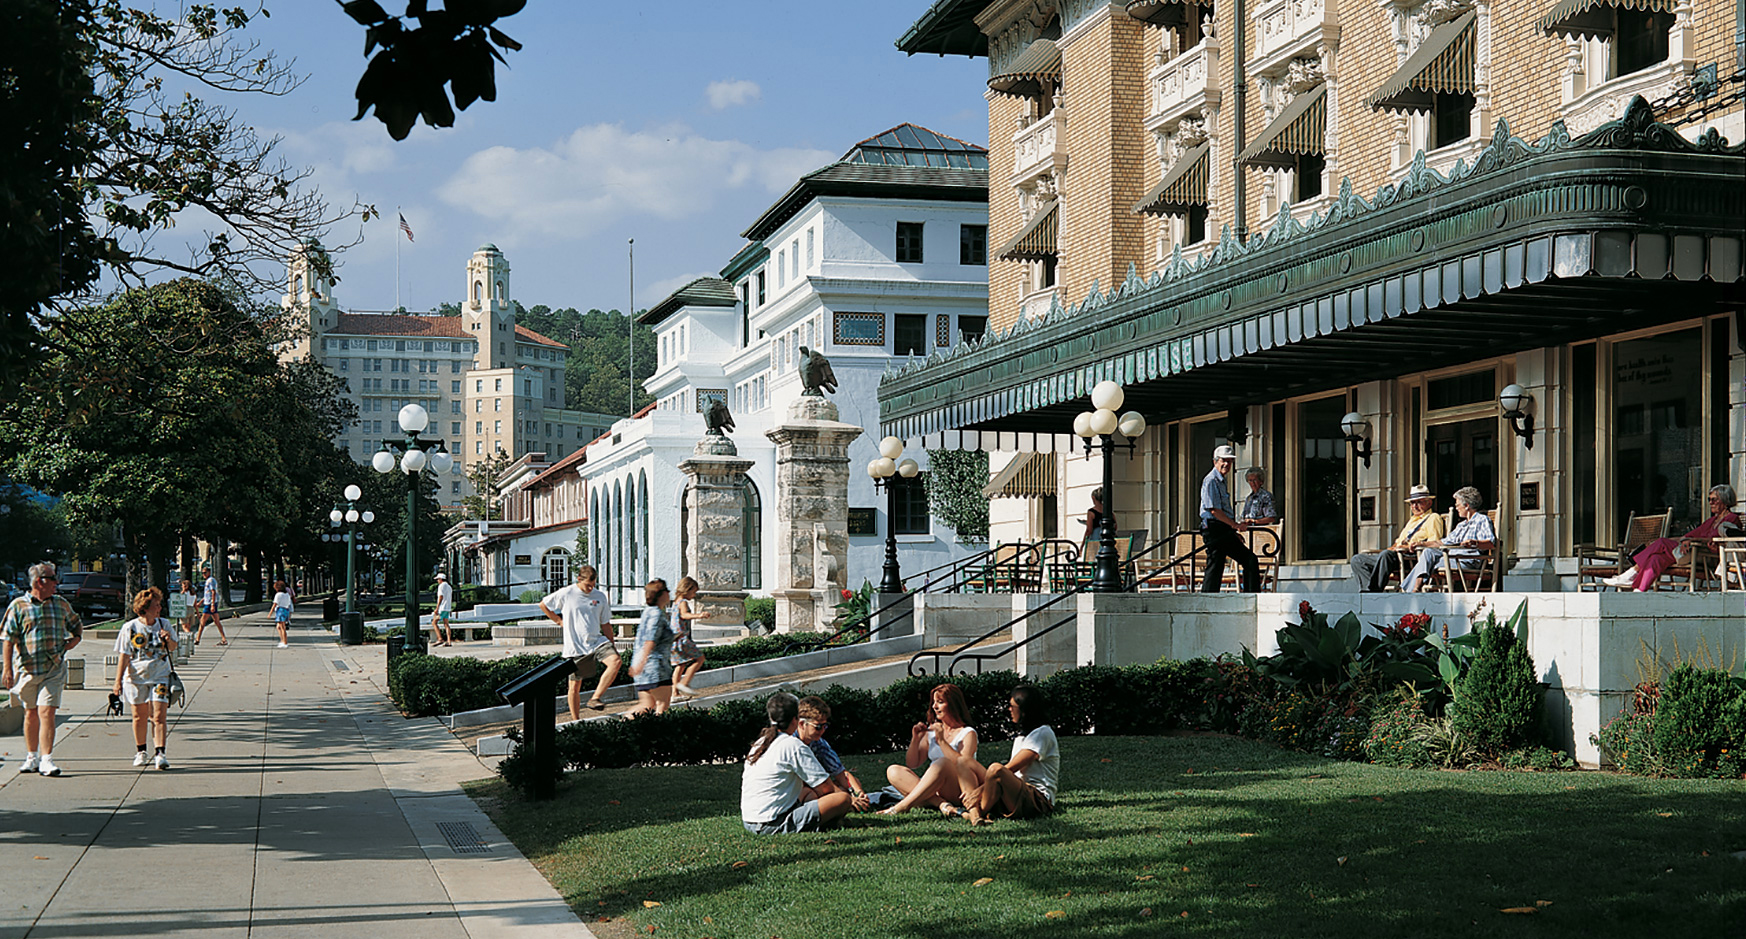 At the center of Hot Springs, Arkansas, Bathhouse Row preserves eight historic bathhouse buildings and gardens along Central Avenue. The historic Fordyce Bathhouse, far right, serves as the park's visitor center. The magnificent twin-towered Art Deco-style Arlington Hotel, built in 1924, rises in the background. Photo courtesy Arlington Hotel.